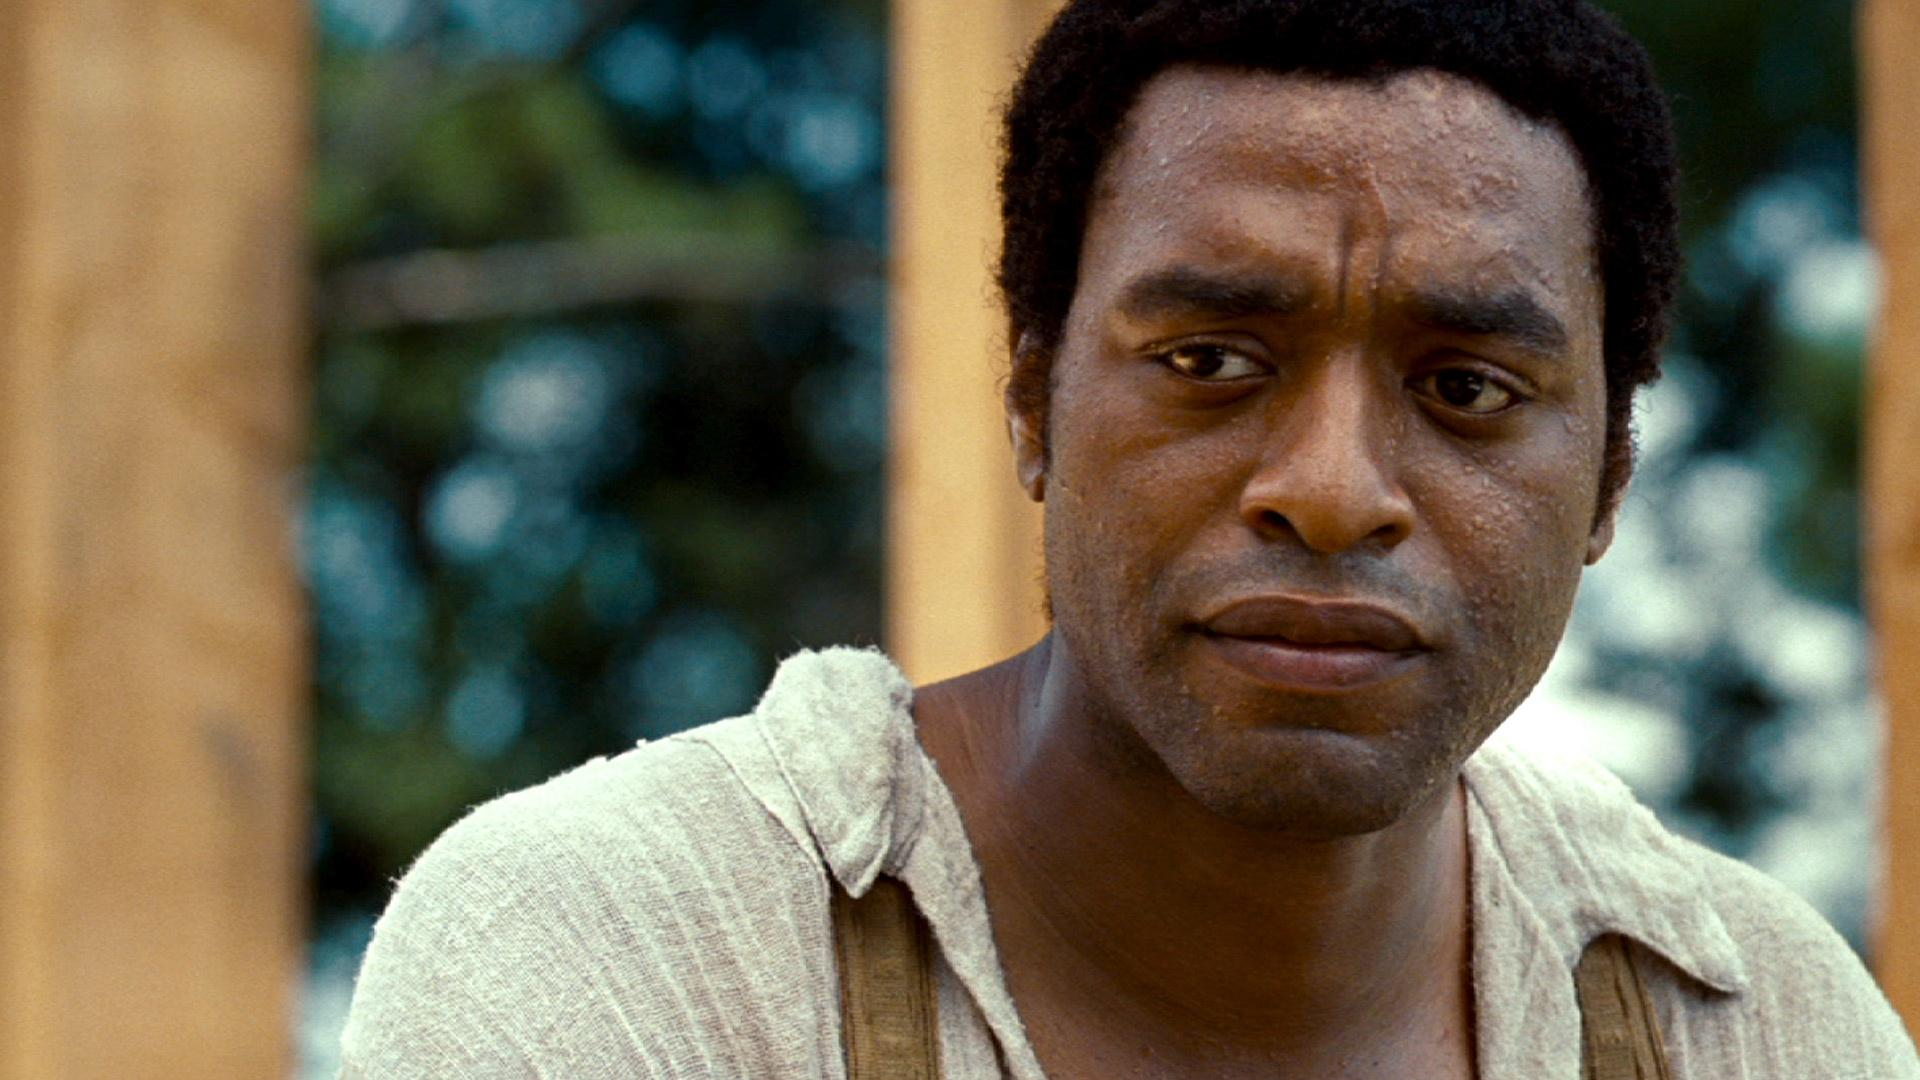 12 years a slave full movie watch online with english subtitles